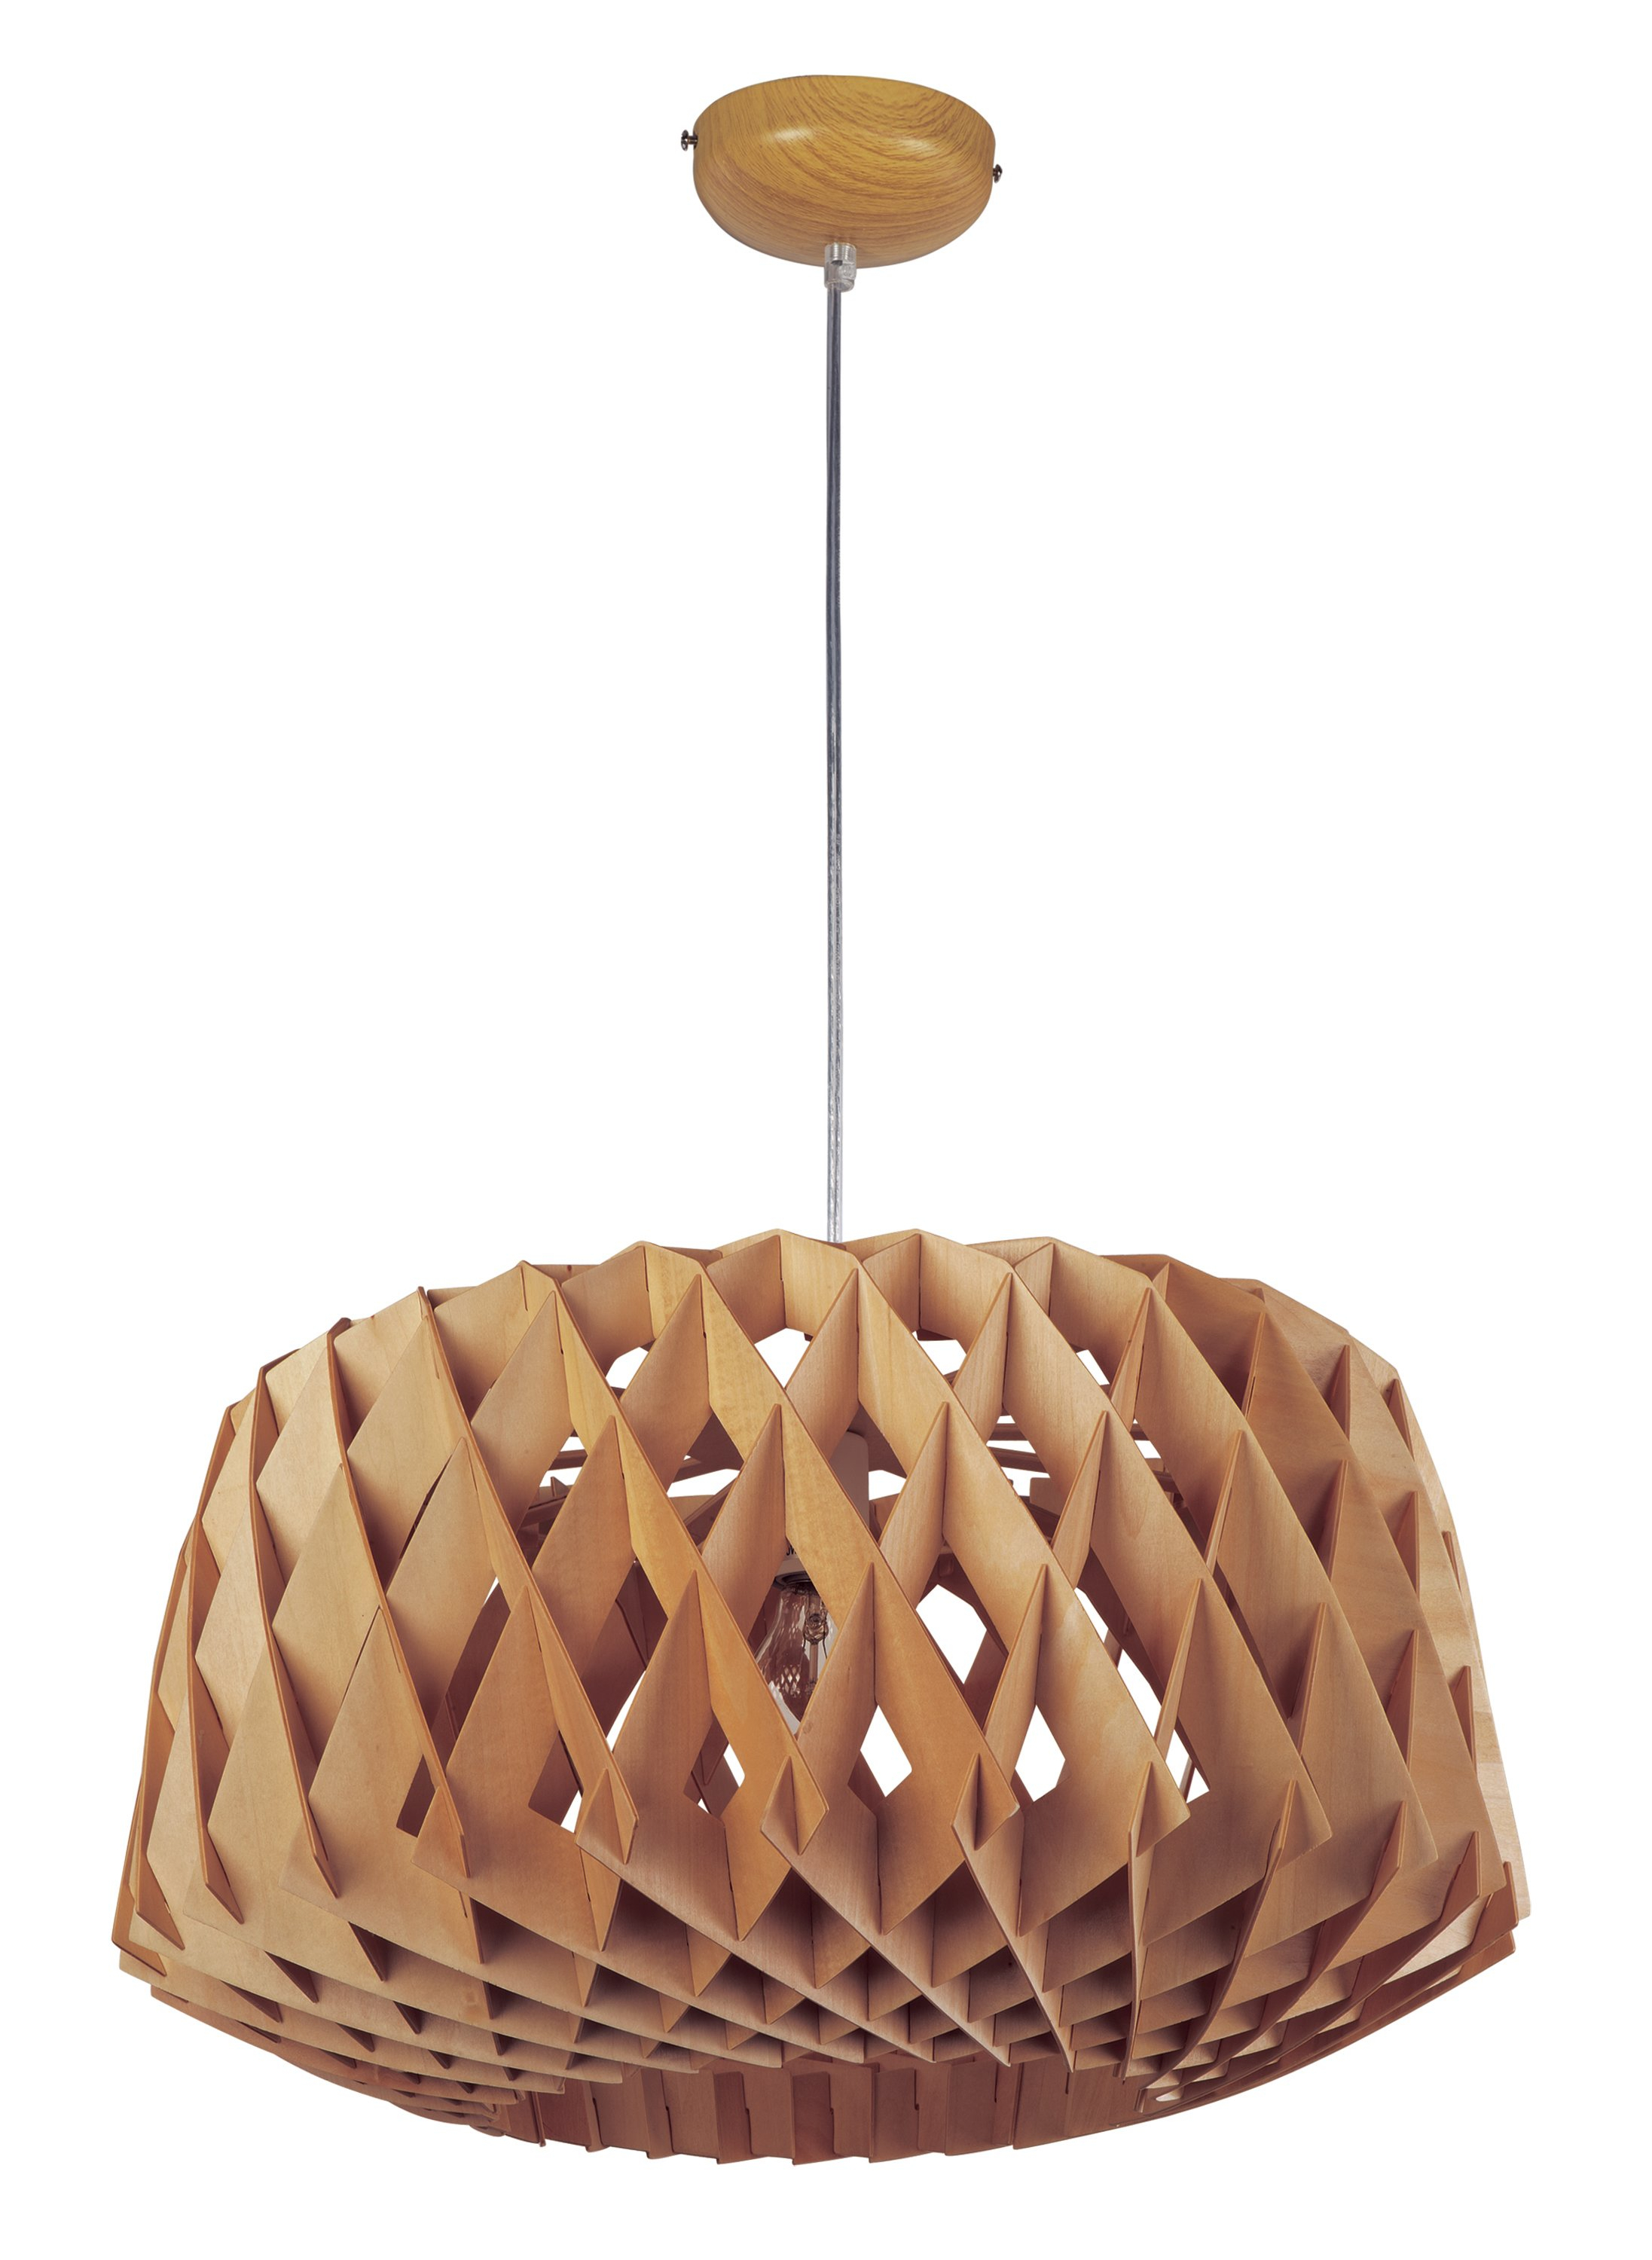 Melora 1-Light Drum Pendant with regard to Melora 1-Light Single Geometric Pendants (Image 19 of 30)